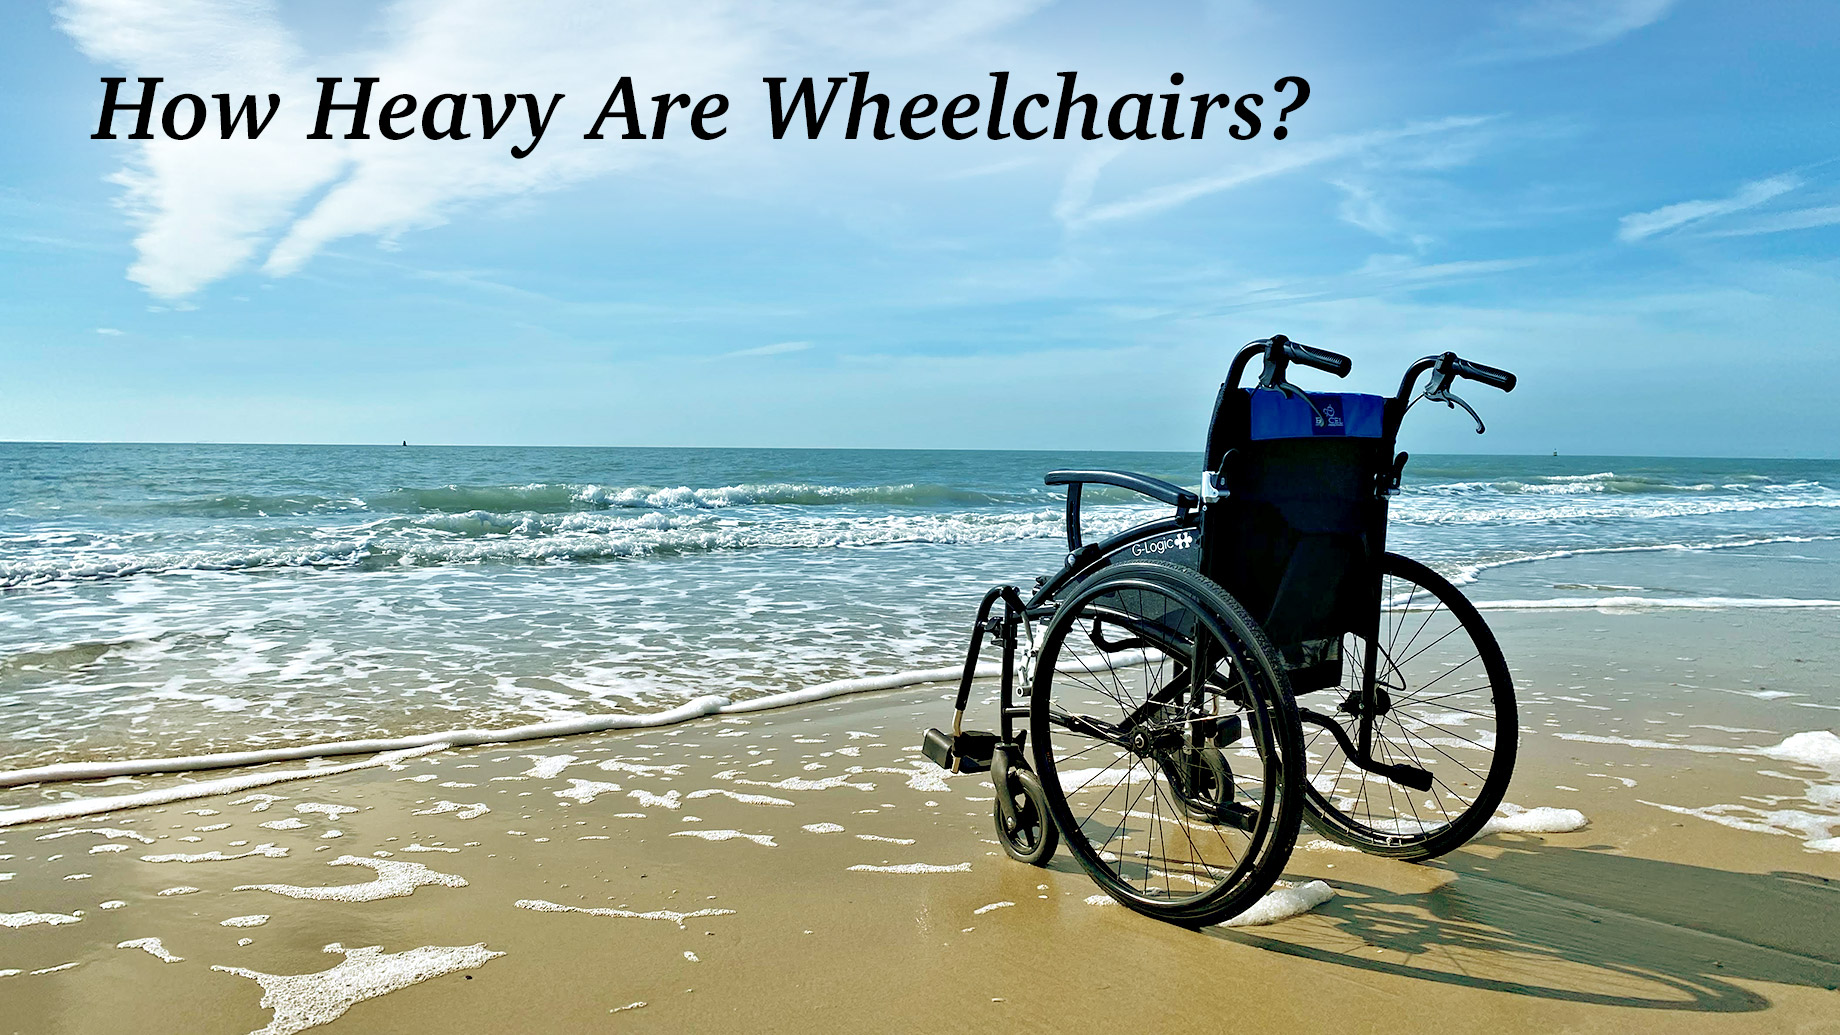 How Heavy Are Wheelchairs?